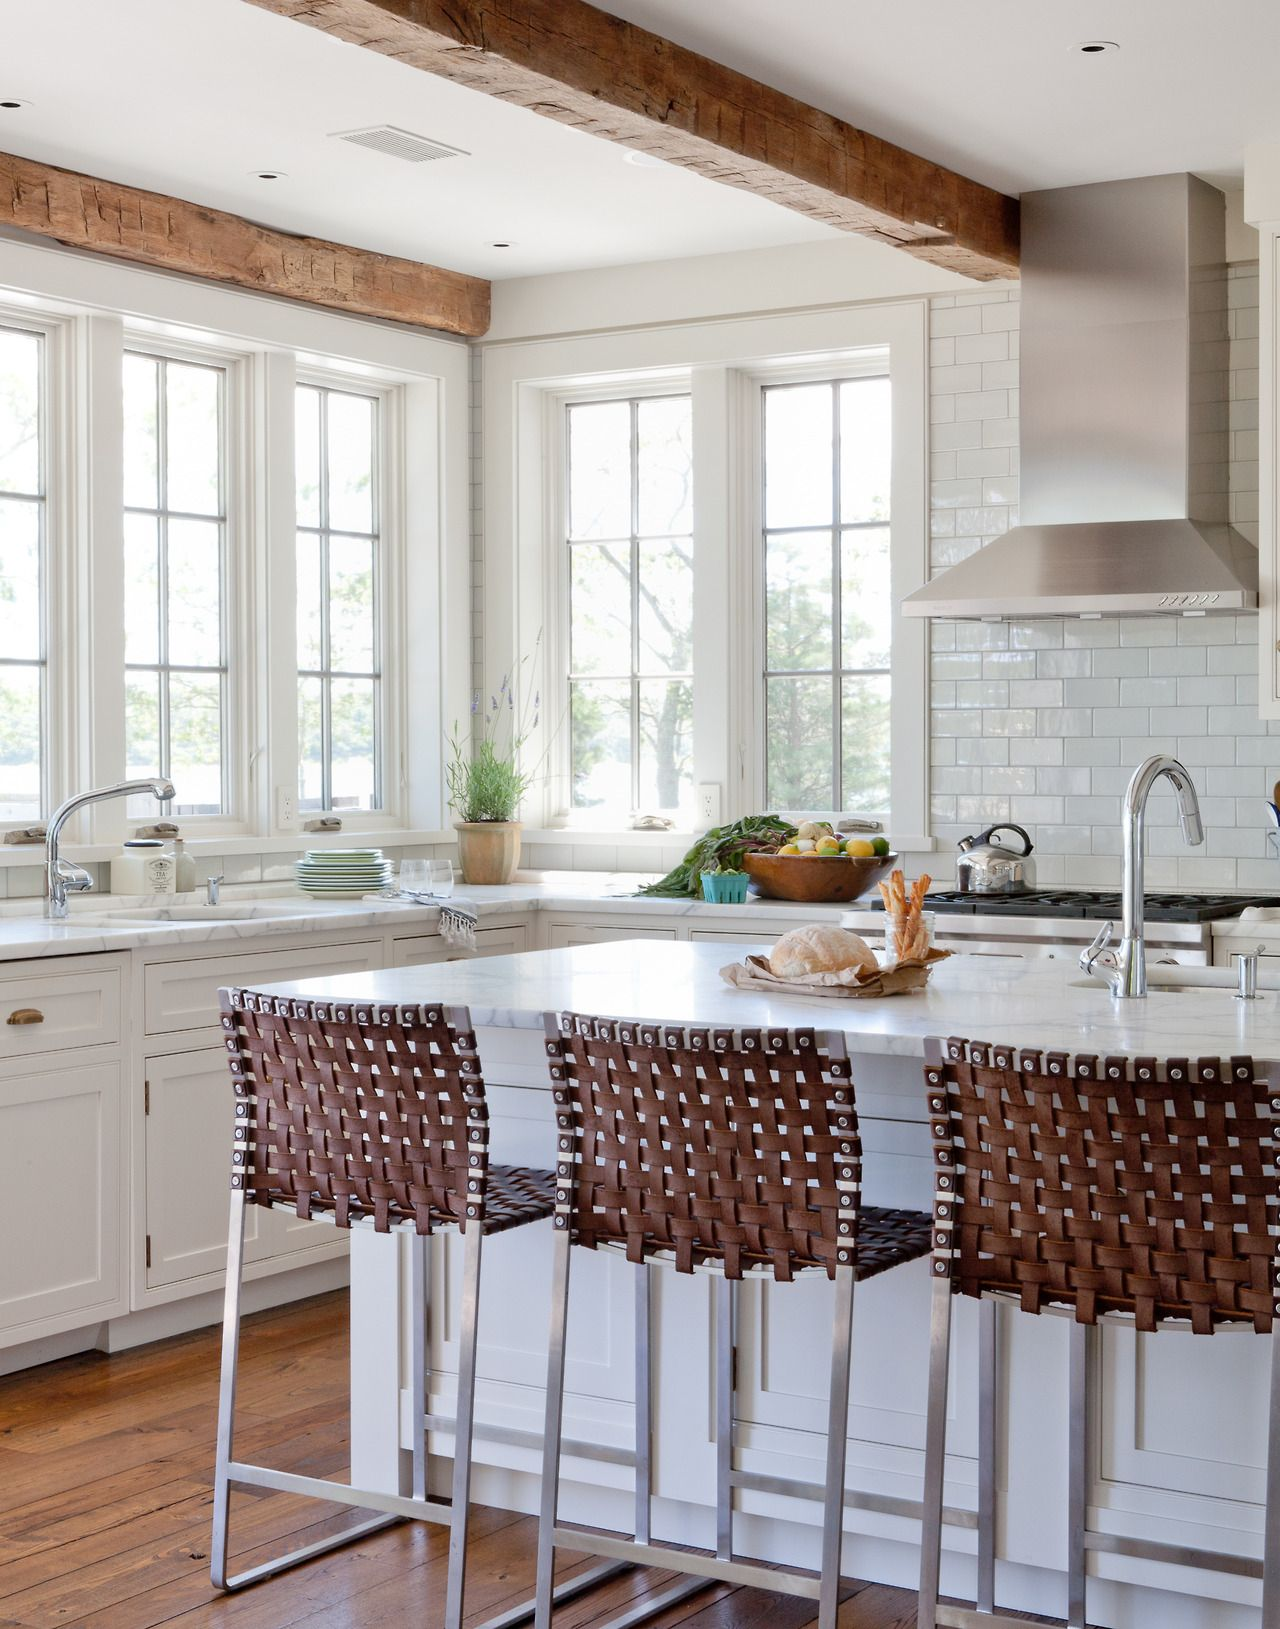 Pin by Ray Fulks on home ideas | Pinterest